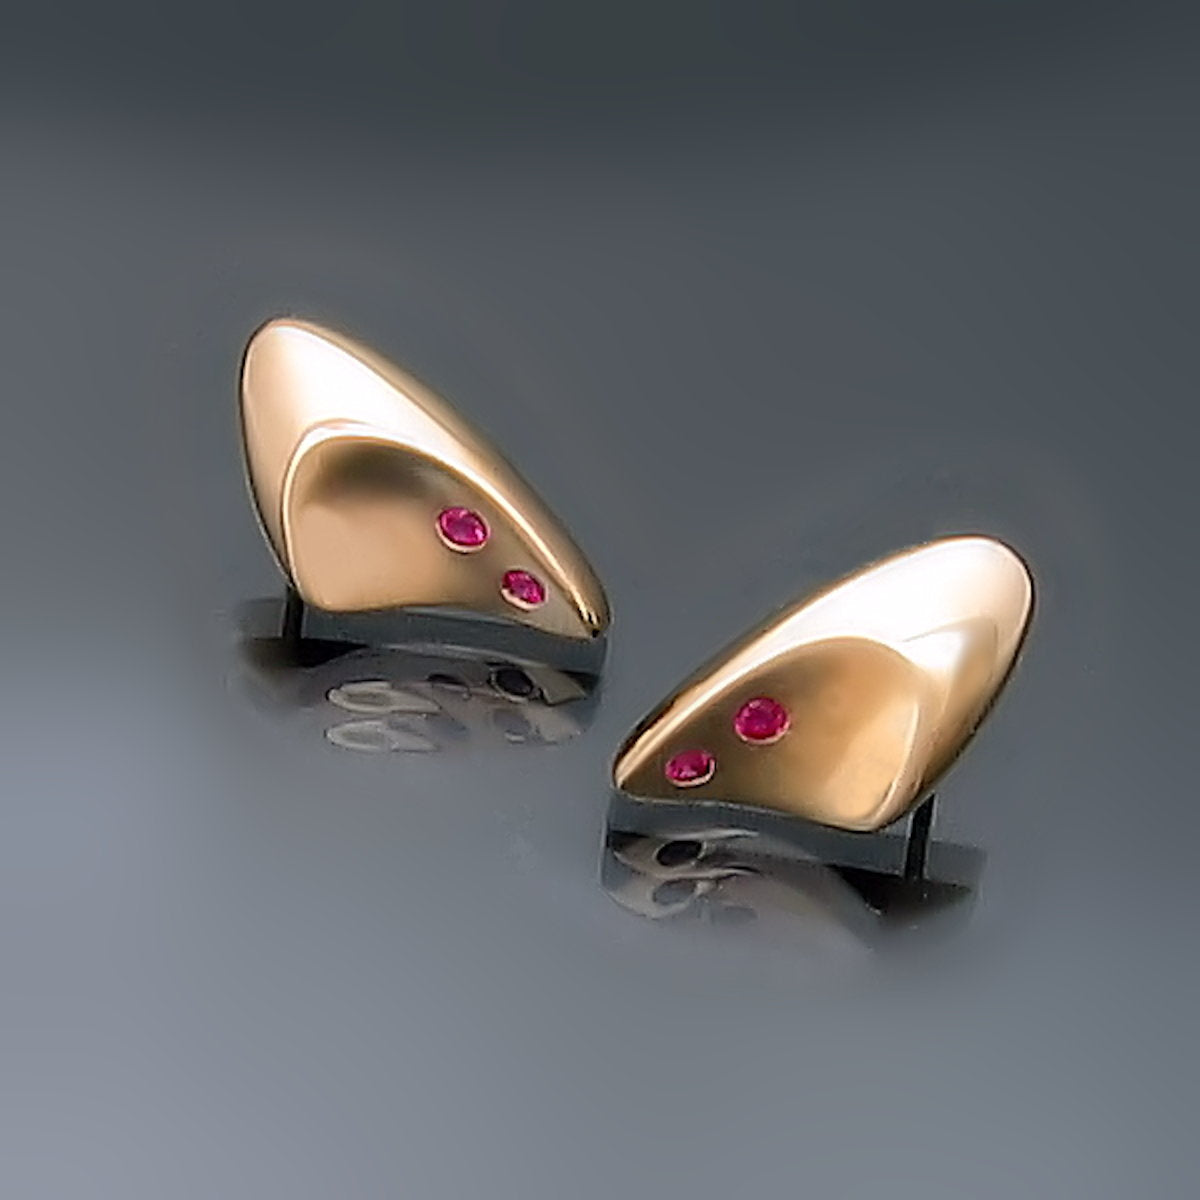 Modern Minimalist Yellow Gold Earrings